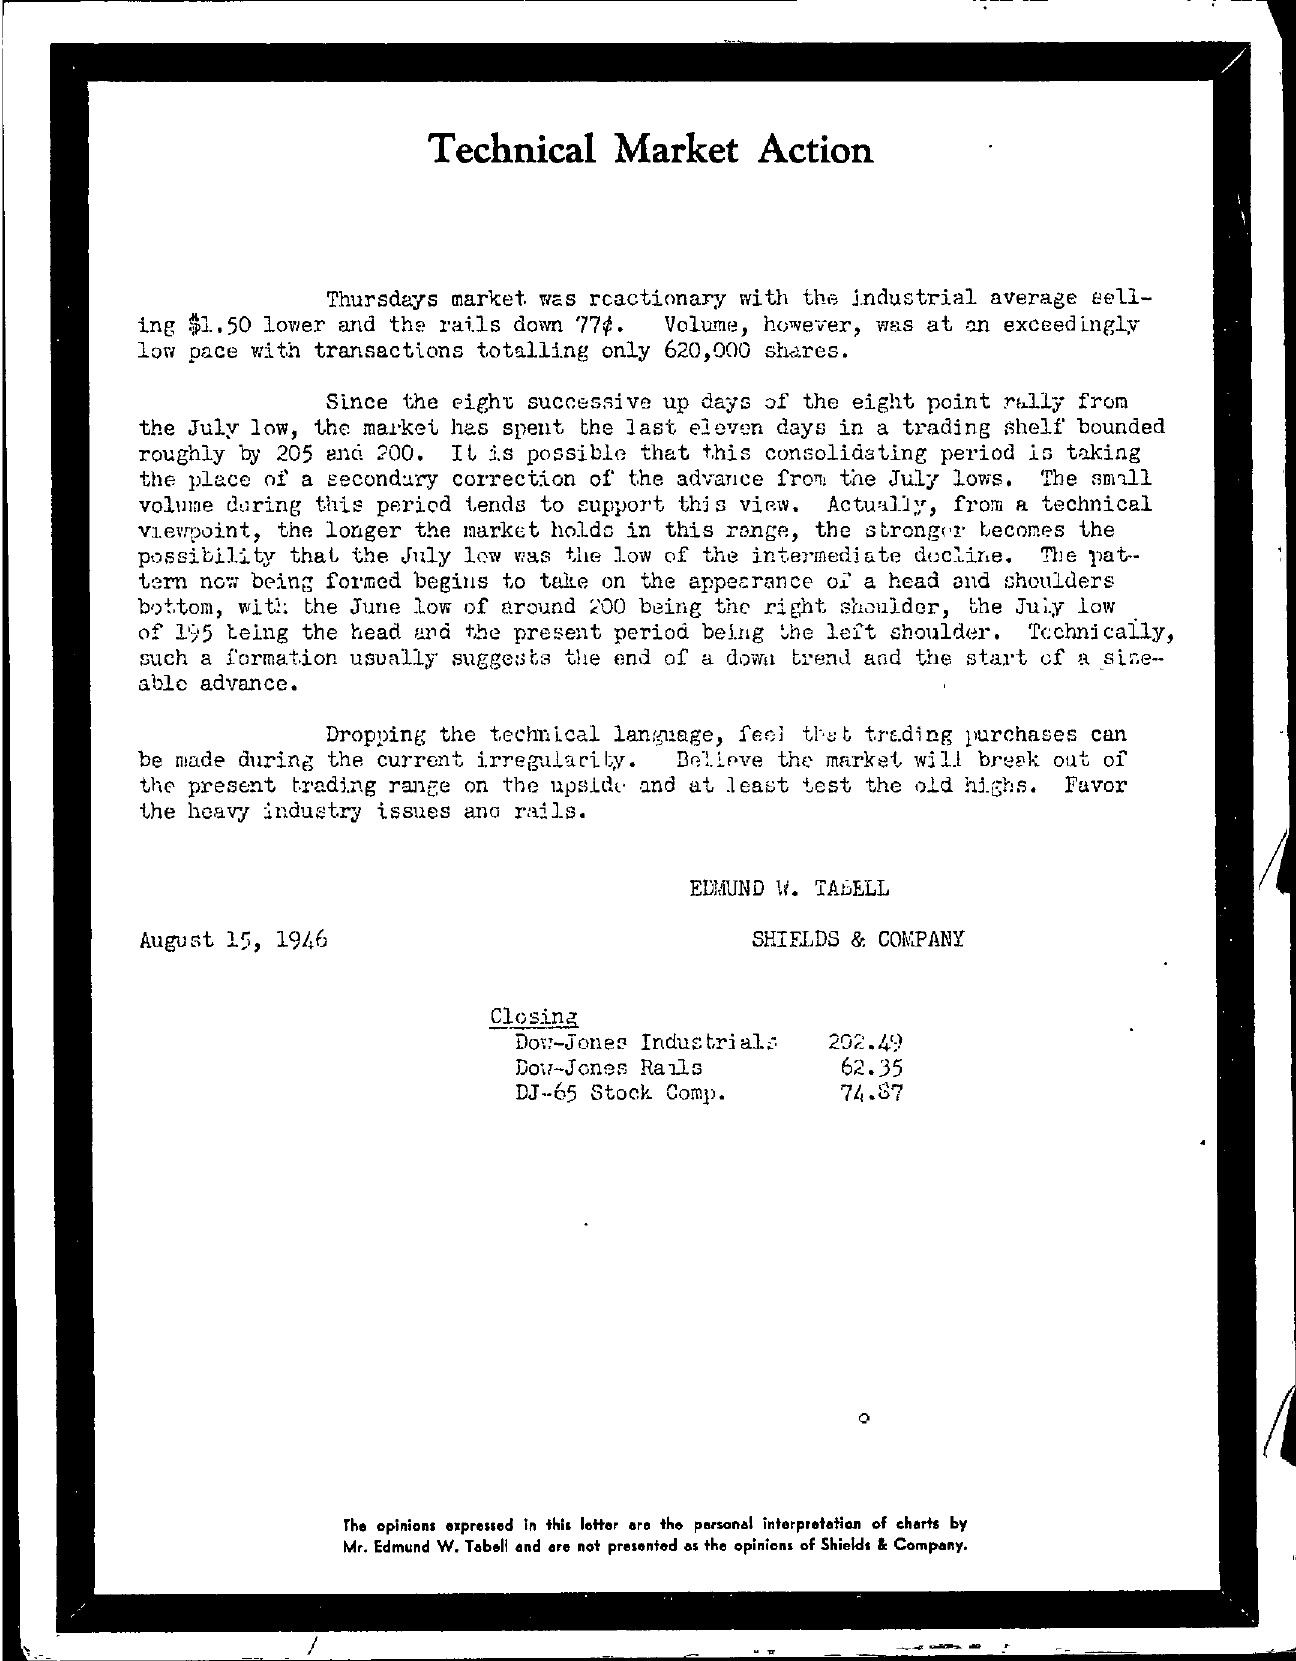 Tabell's Market Letter - August 15, 1946